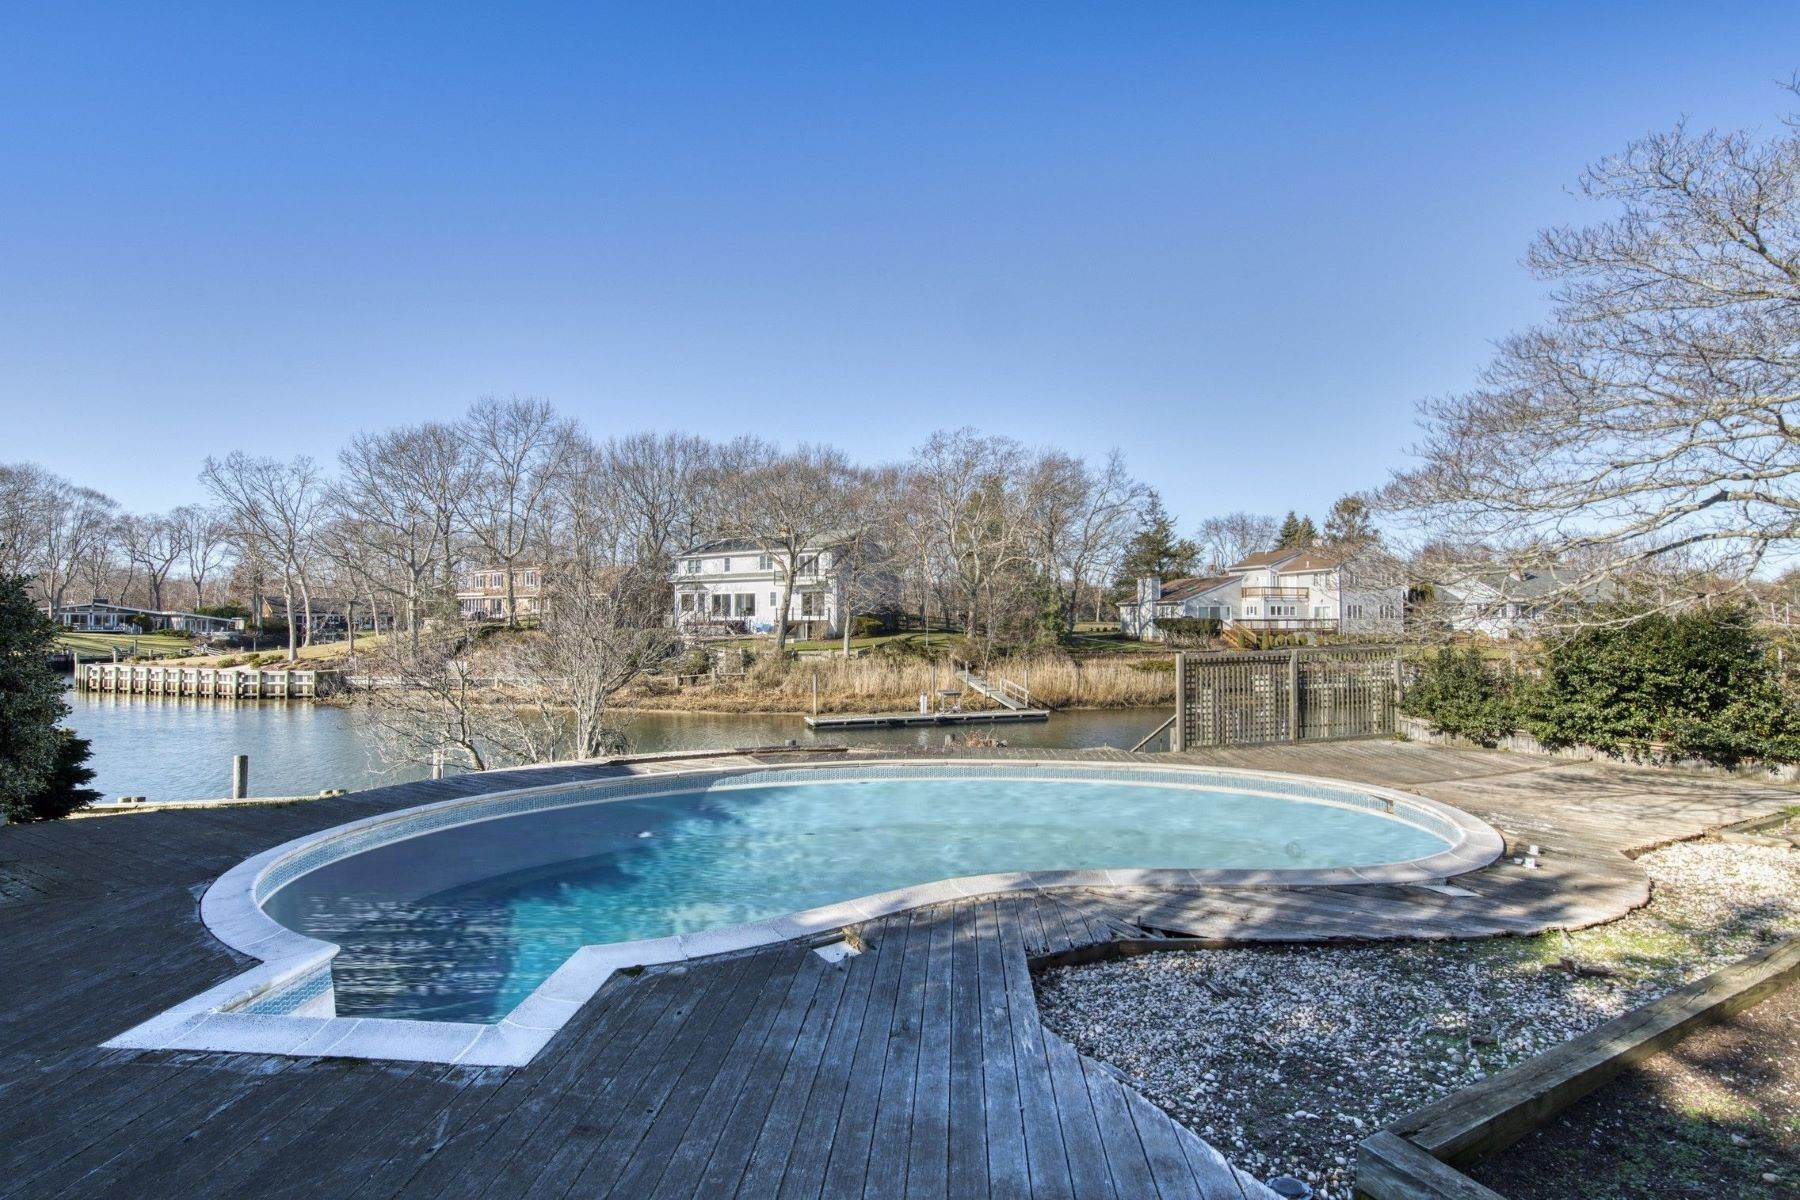 Single Family Homes for Sale at 520 Snug Harbor Road, Greenport, Ny, 11944 520 Snug Harbor Road Greenport, New York 11944 United States